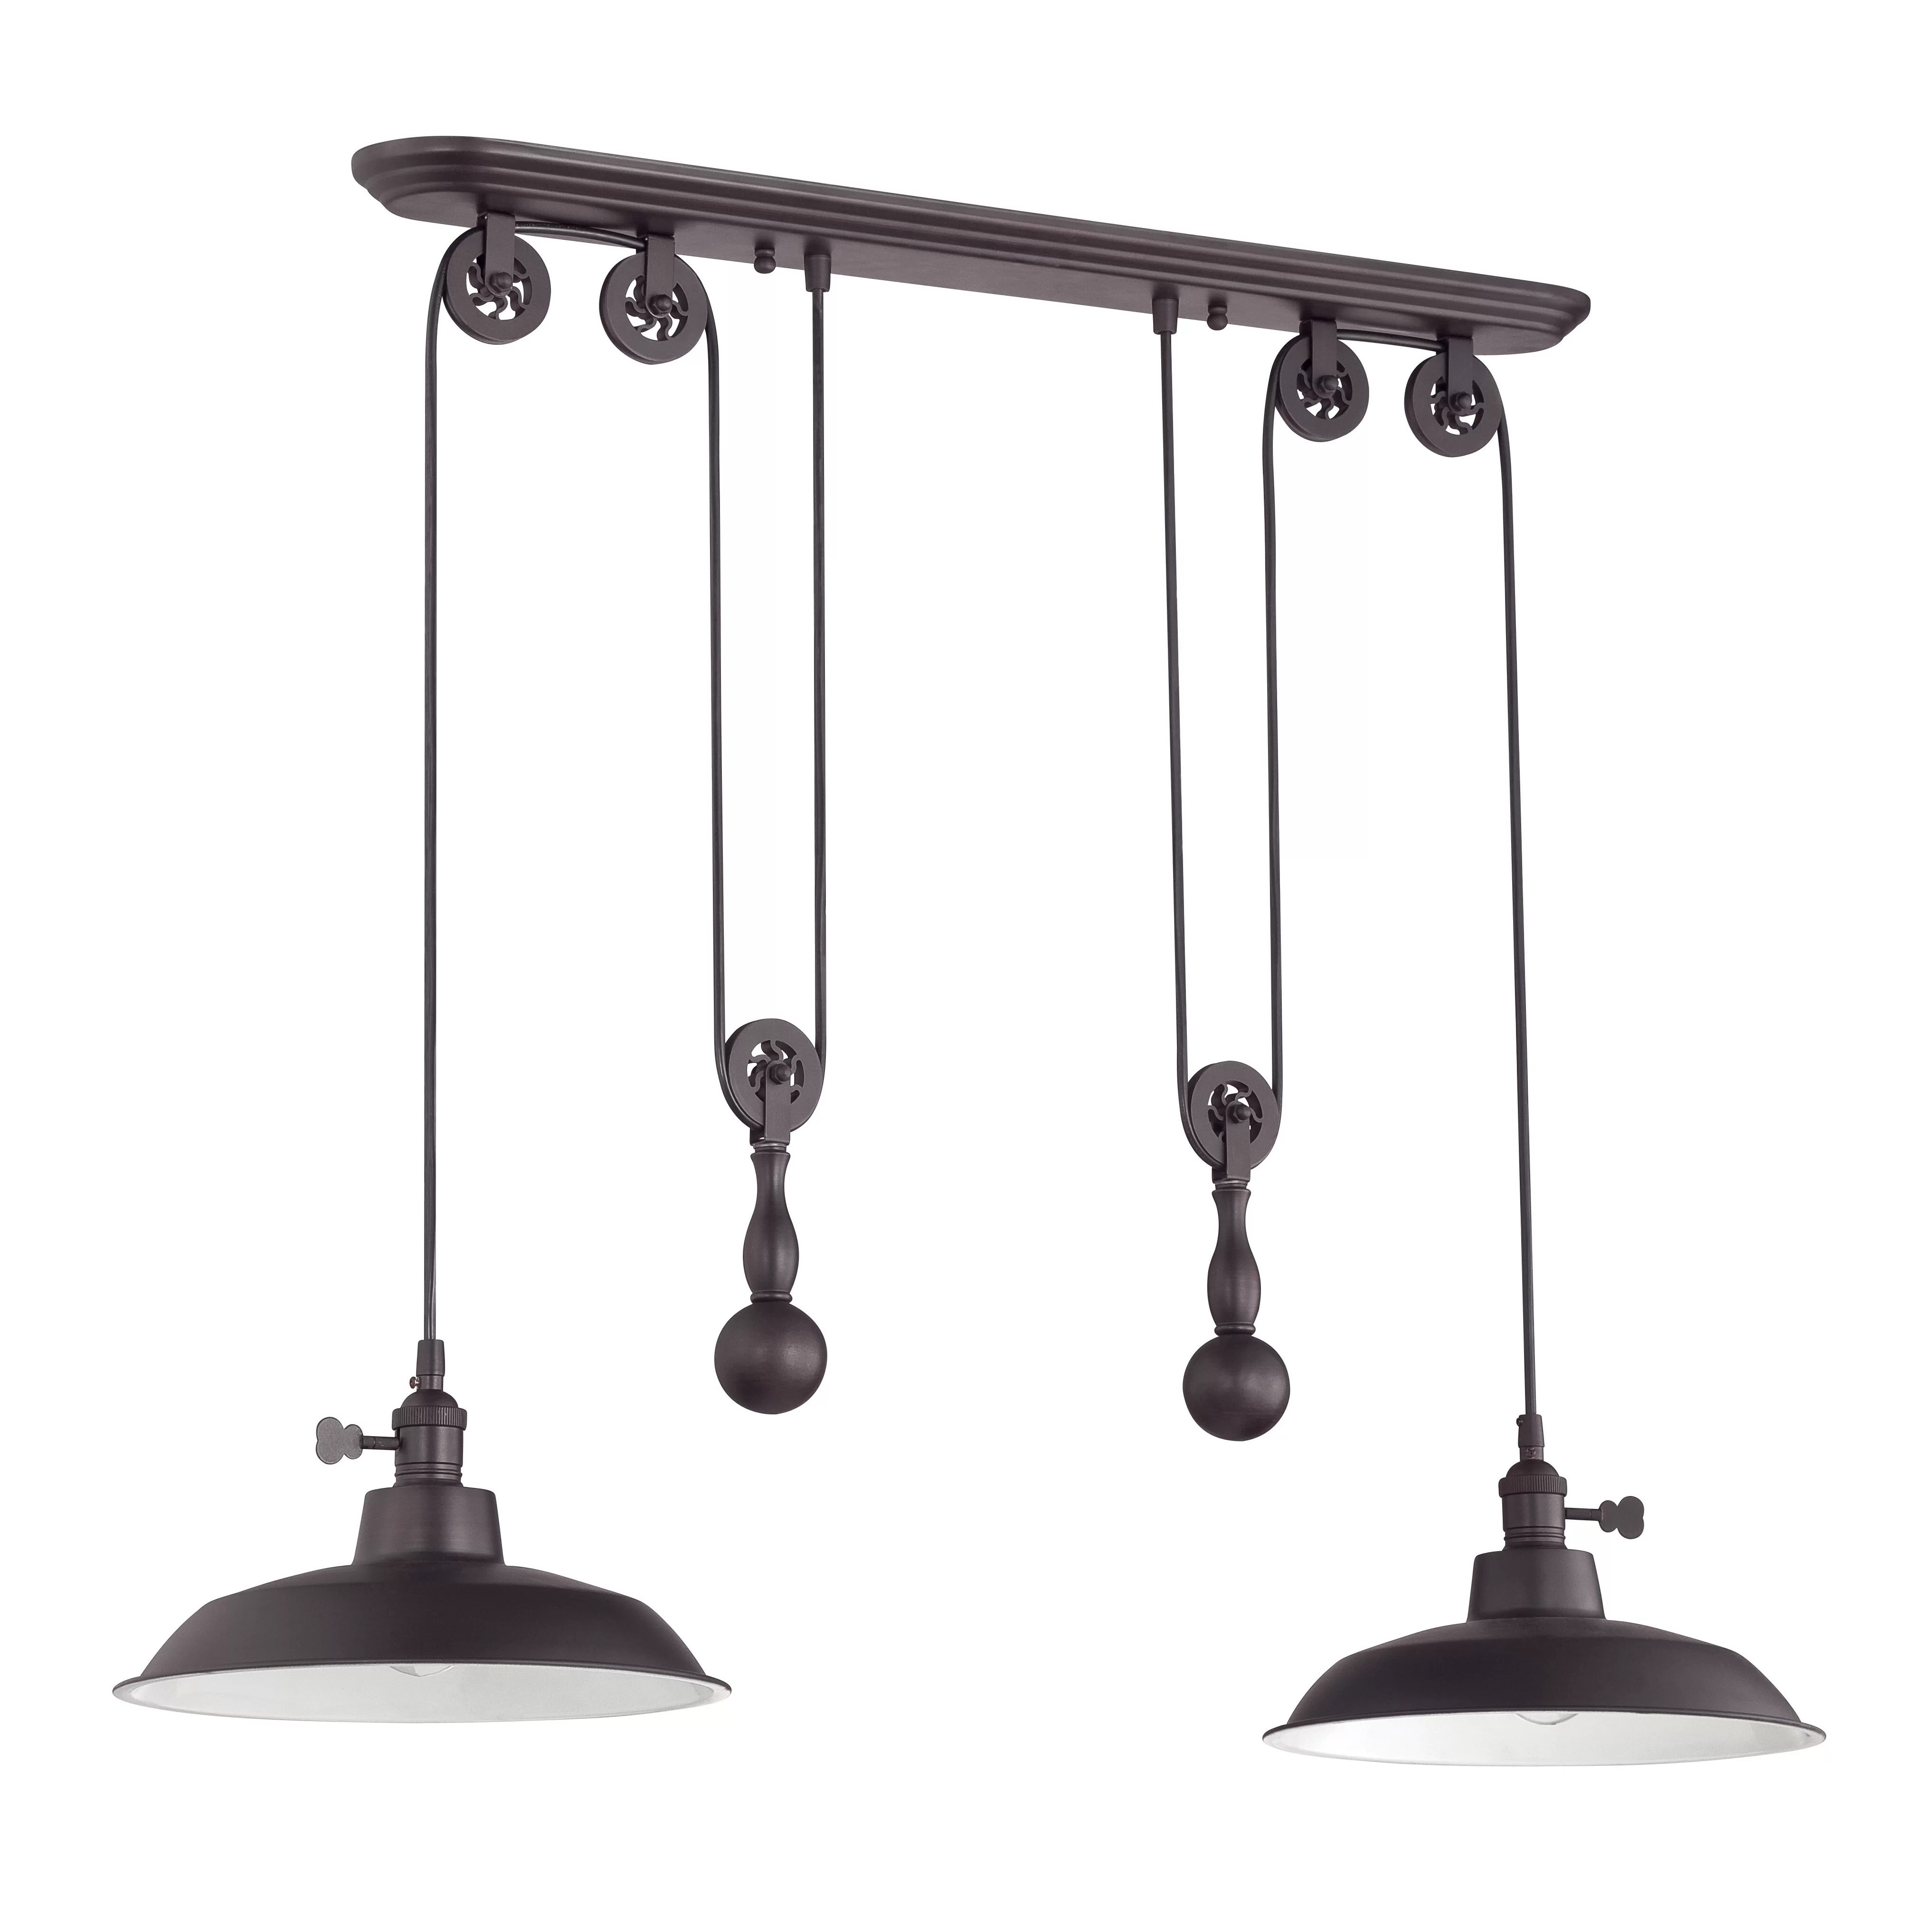 Pendant Island Lights Craftmade Pulley 2 Light Kitchen Island Pendant And Reviews